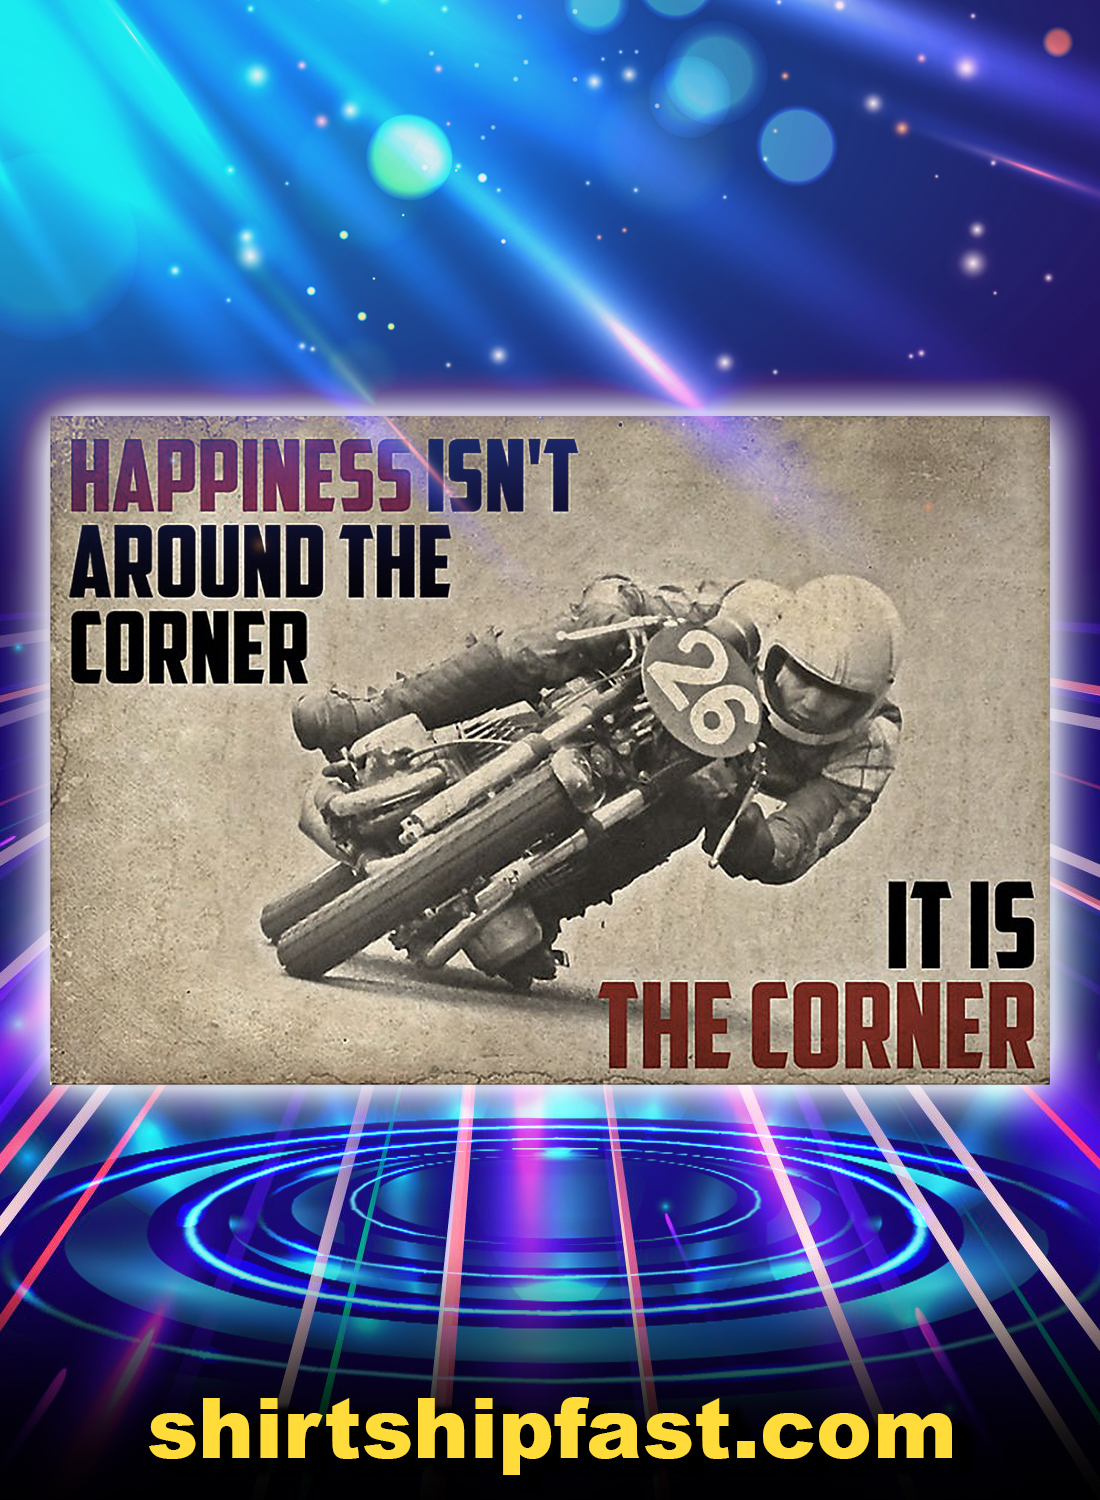 Motorcycle happiness isn't around the corner poster and canvas prints